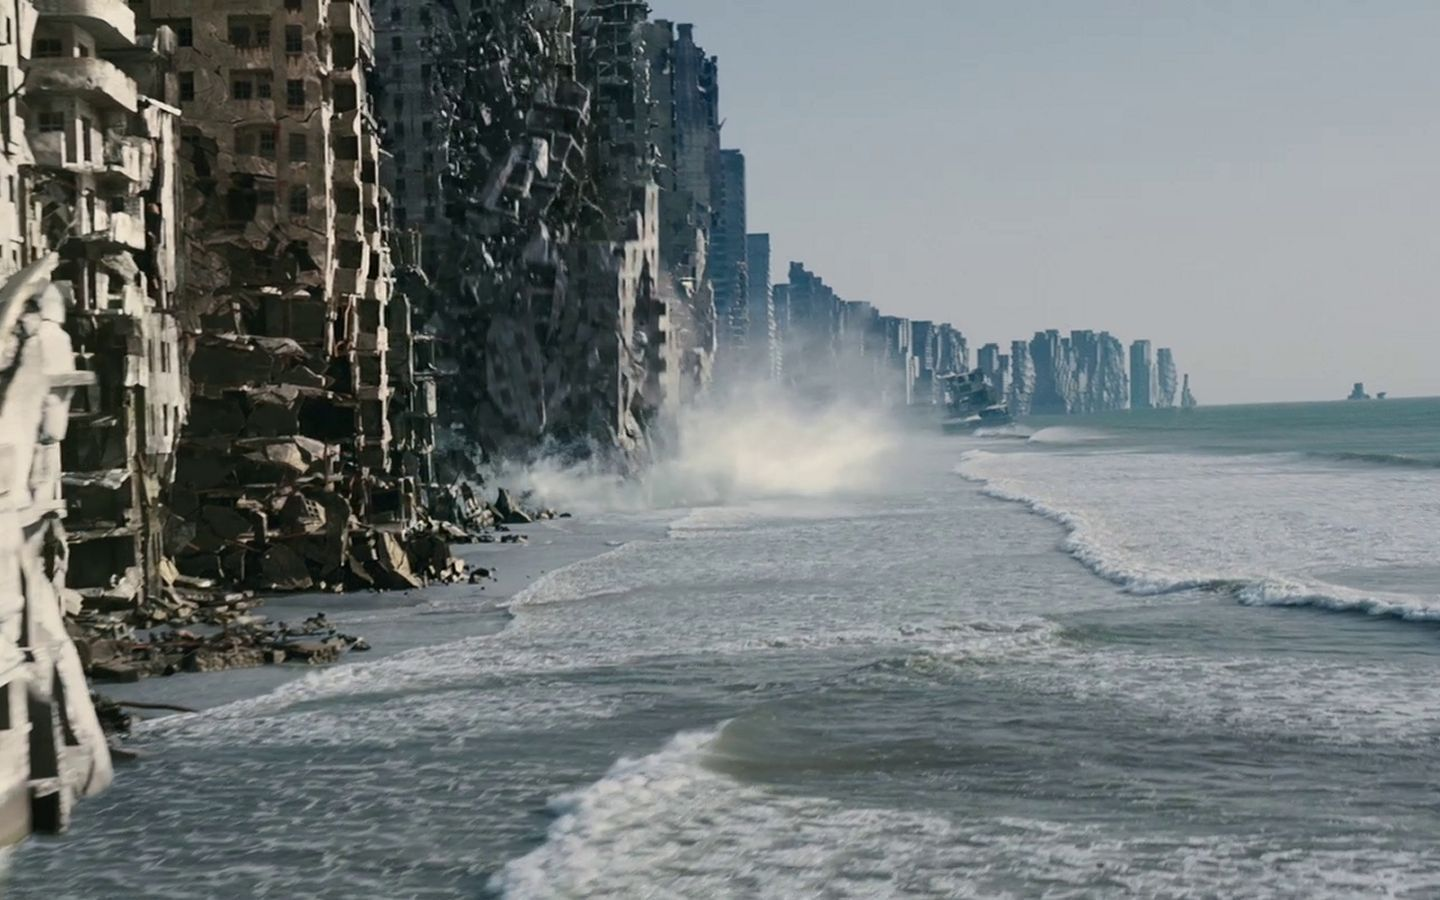 Inception 2010 Inception Click For 100 Audio Quotes Science Fiction Film Air Cannon Bond Films